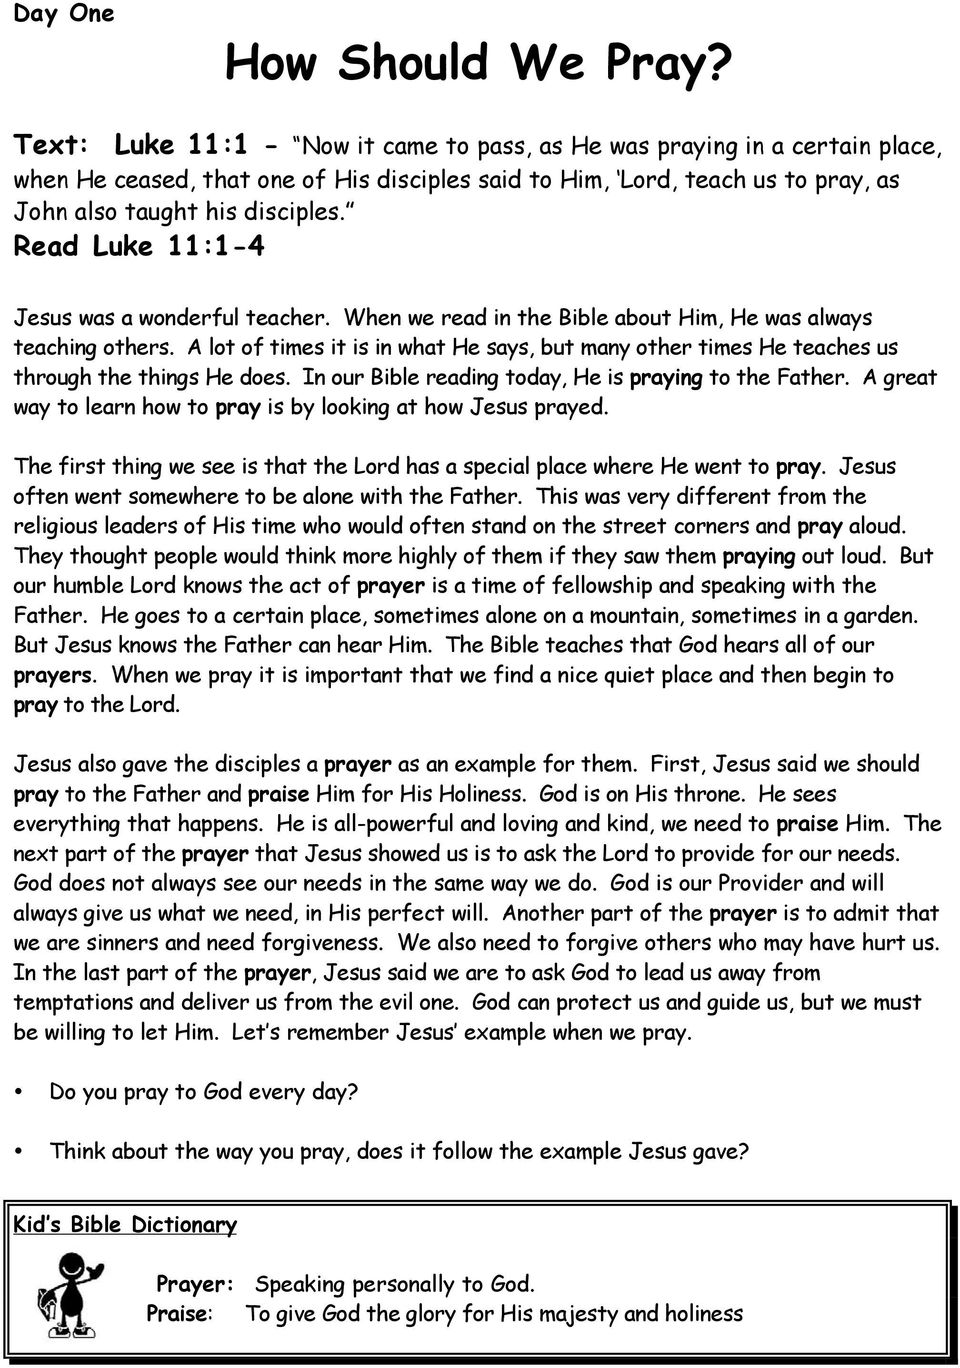 Read Luke 11:1-4 Jesus was a wonderful teacher. When we read in the Bible about Him, He was always teaching others.